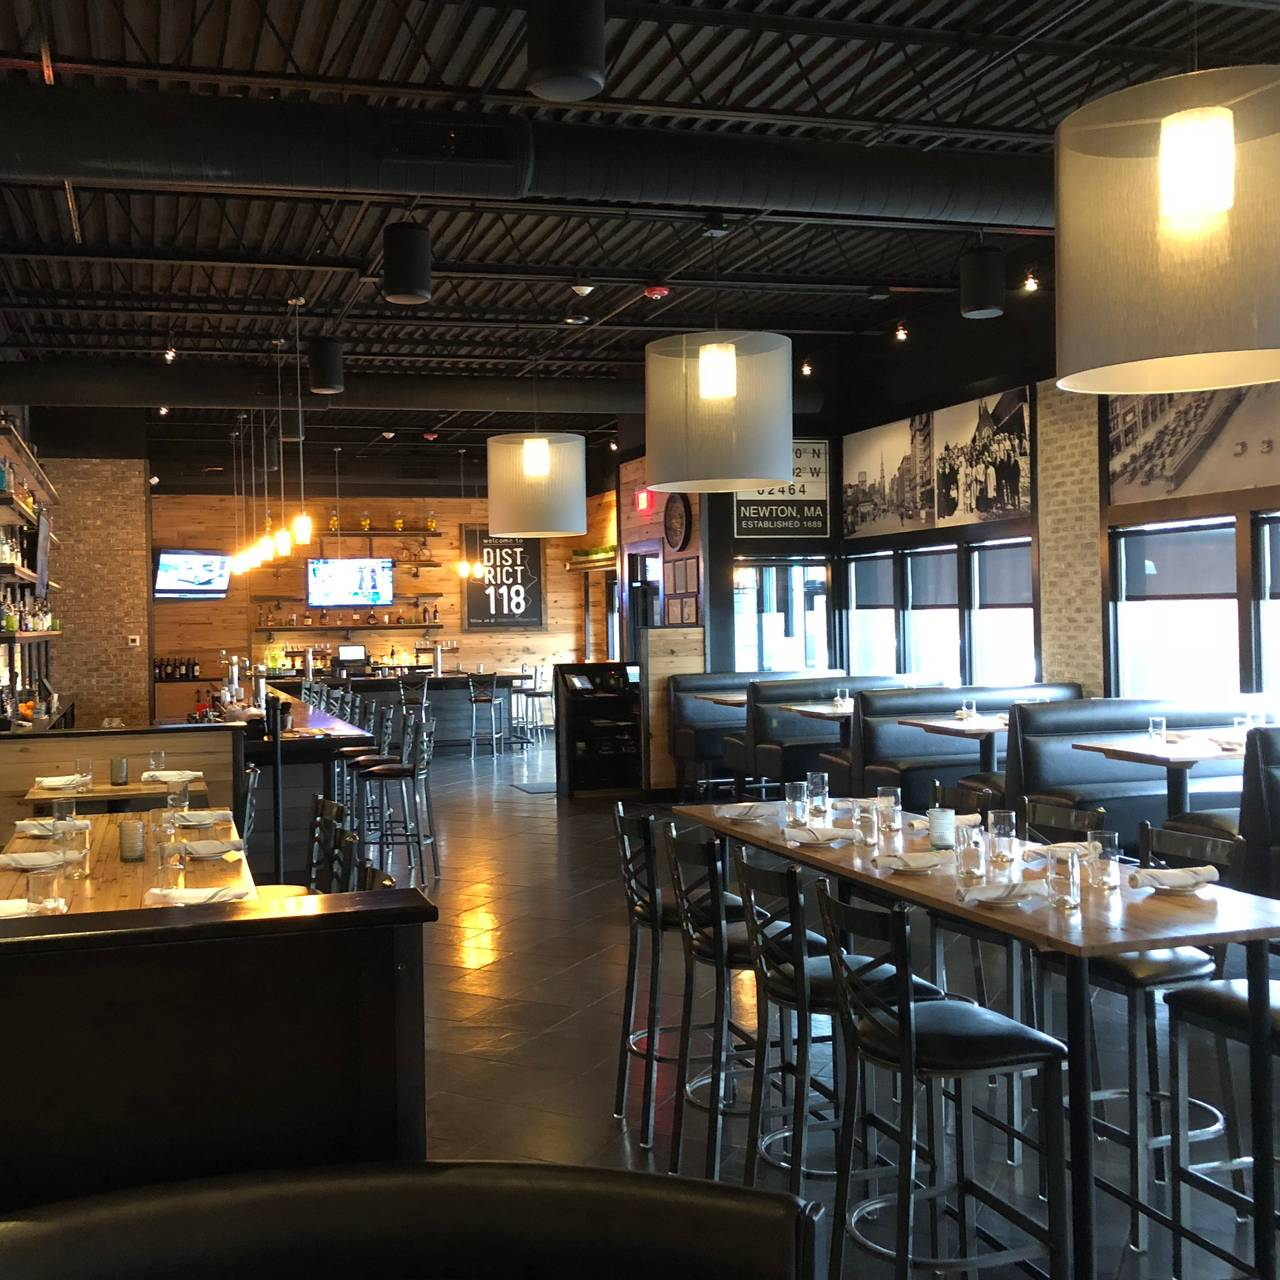 district 118 kitchen and bar restaurant newton ma opentable